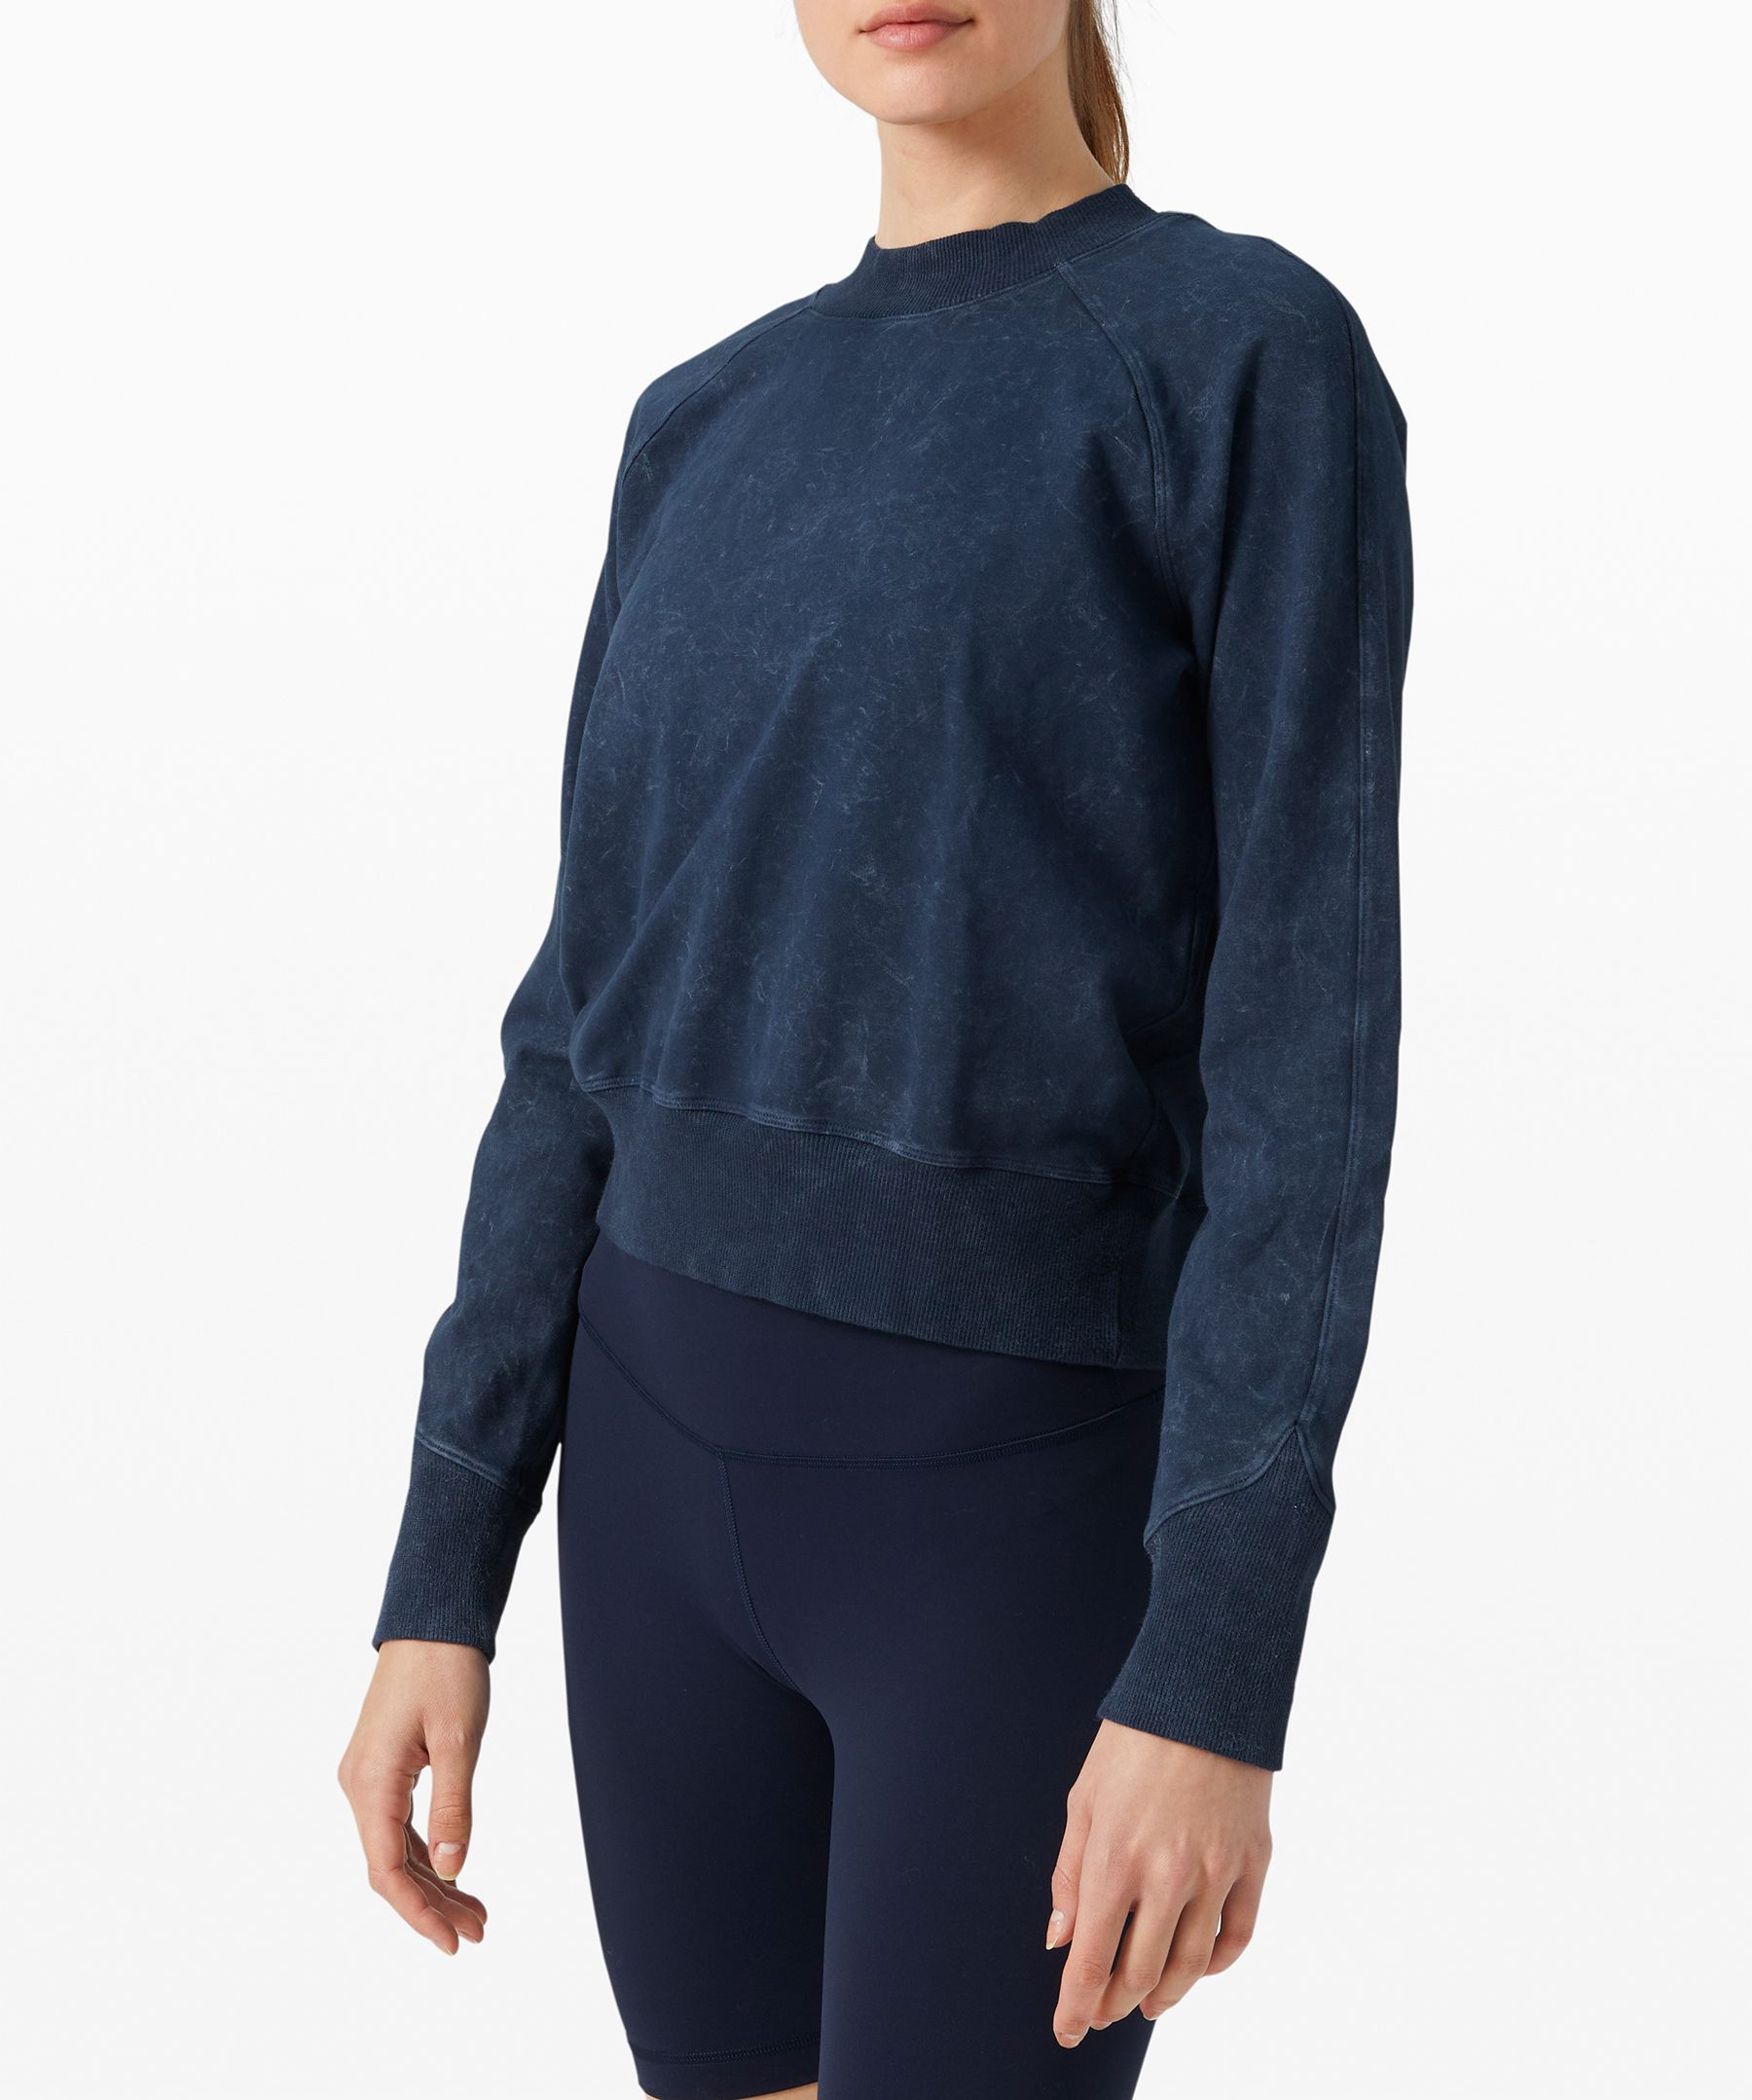 Feel cozy in this soft  crew-neck sweater that\\\'s  perfect for lightweight warmth  post practice, or to give you  some extra coverage during the  day.